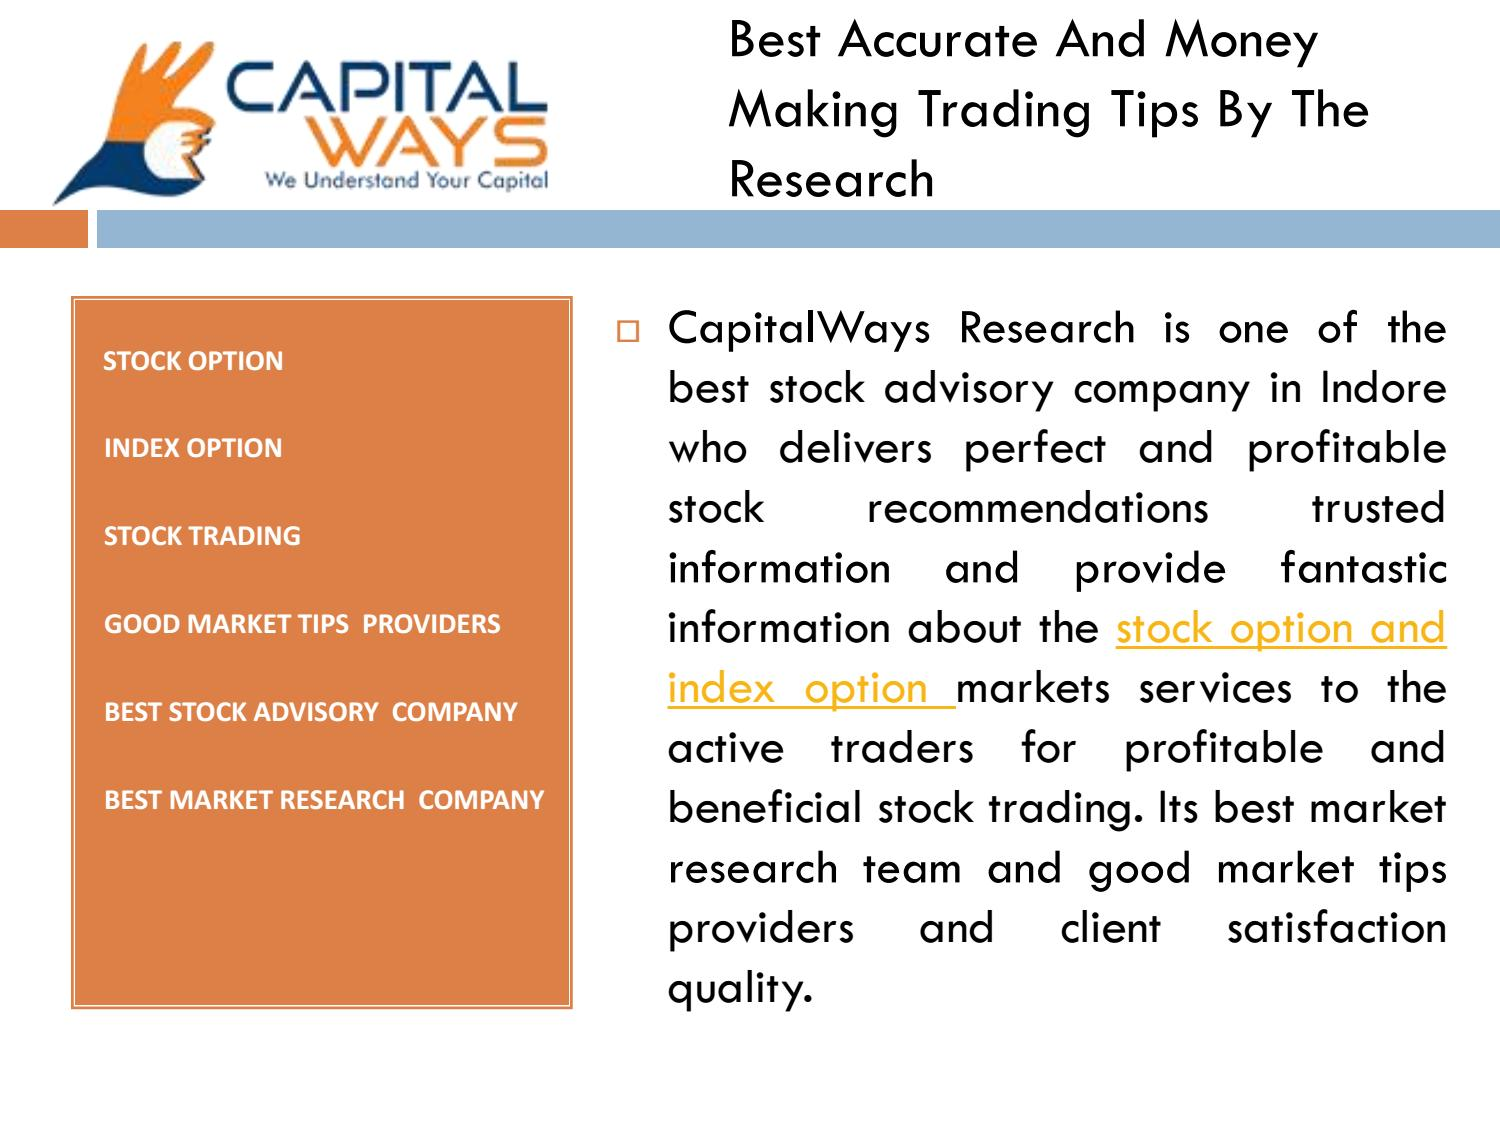 Best accurate and money making trading tips by the research